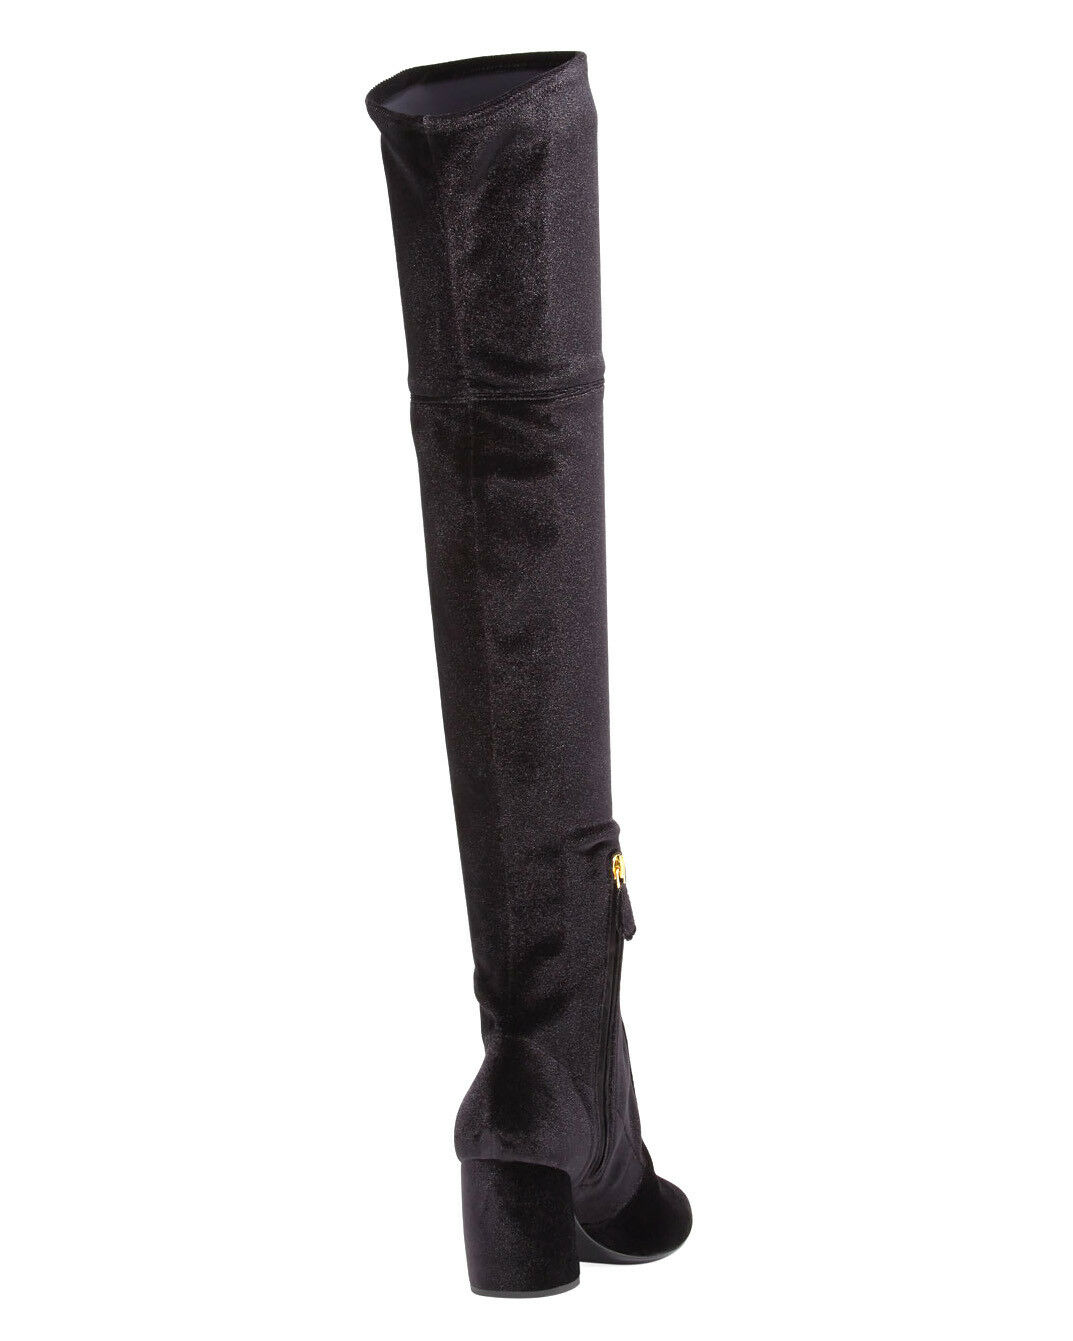 PRADA BLACK VELVET STRETCH VELLUTO OVER THE KNEE KNEE KNEE BOOTS 39 EU 9 US 285bcd